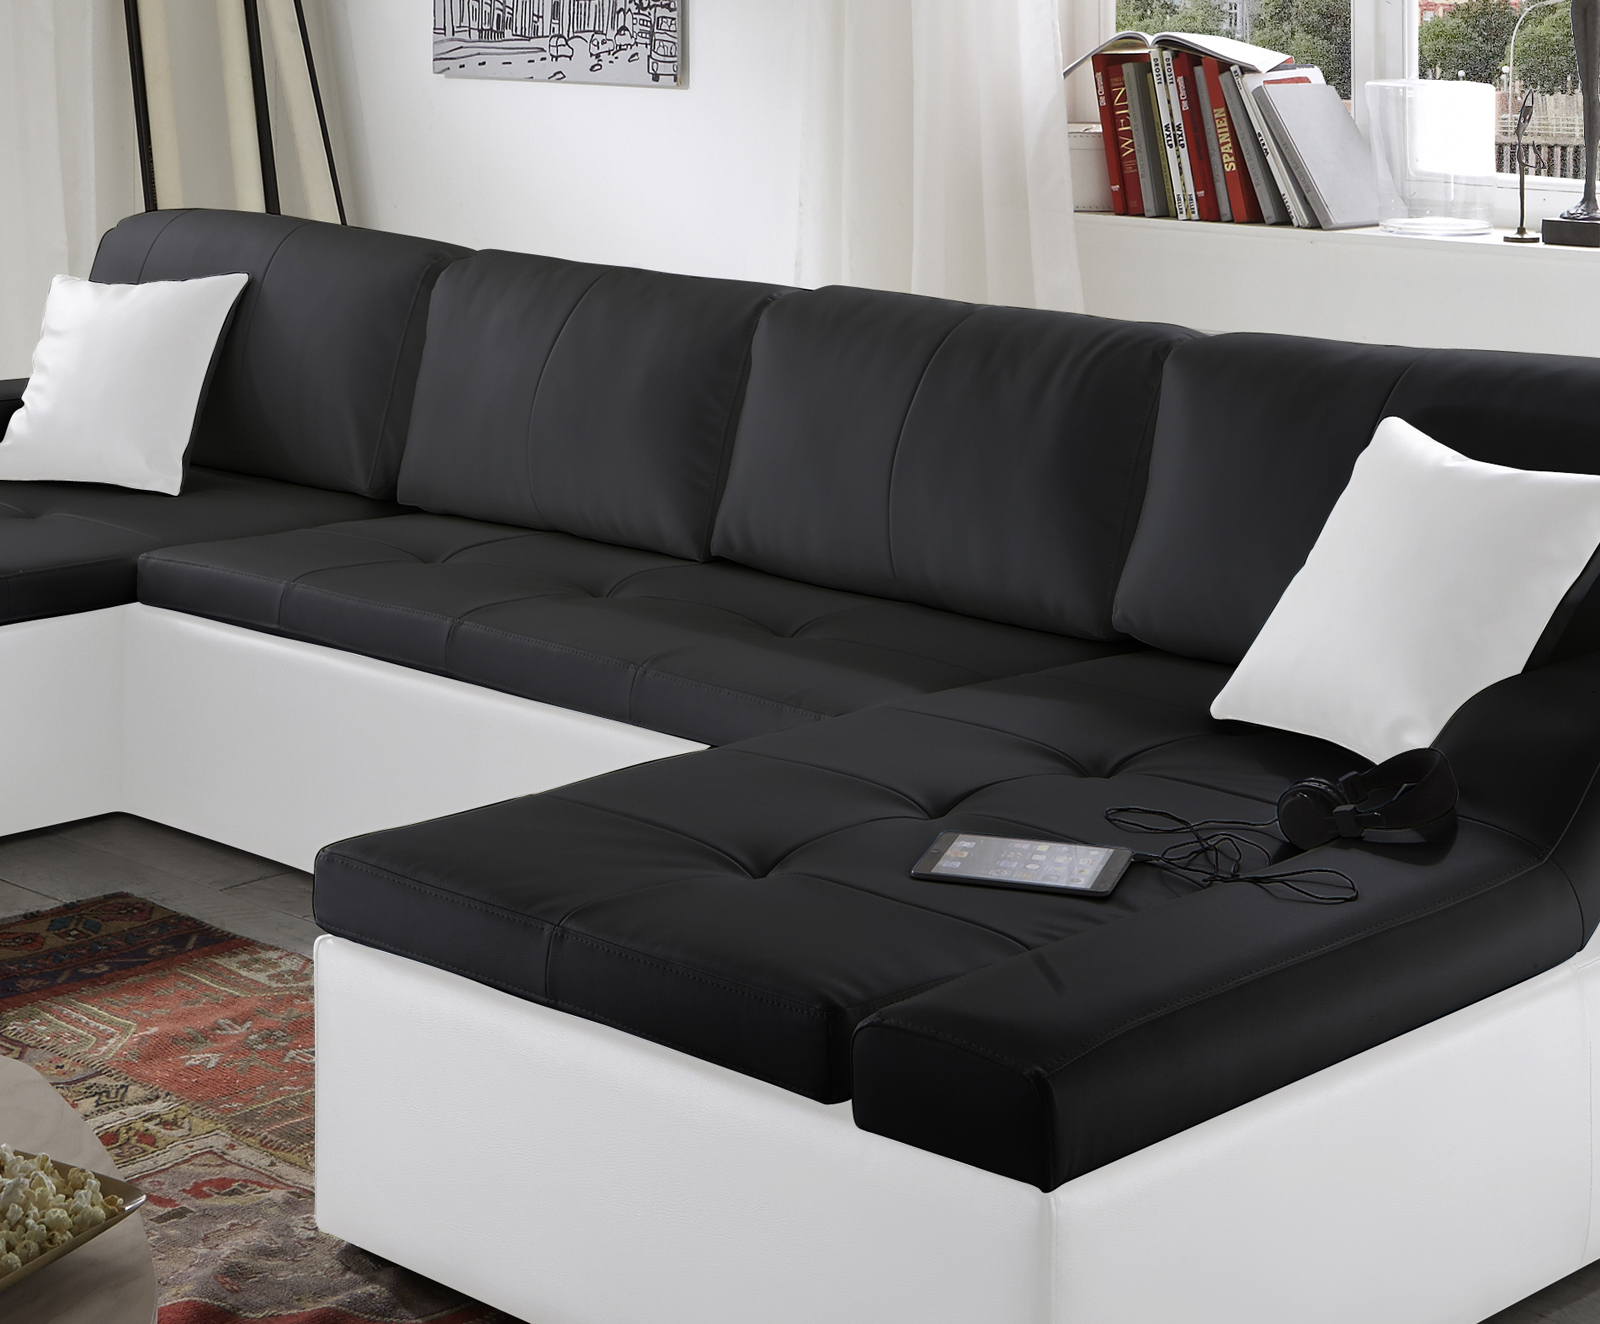 schlafsofa schwarz wei m belideen. Black Bedroom Furniture Sets. Home Design Ideas